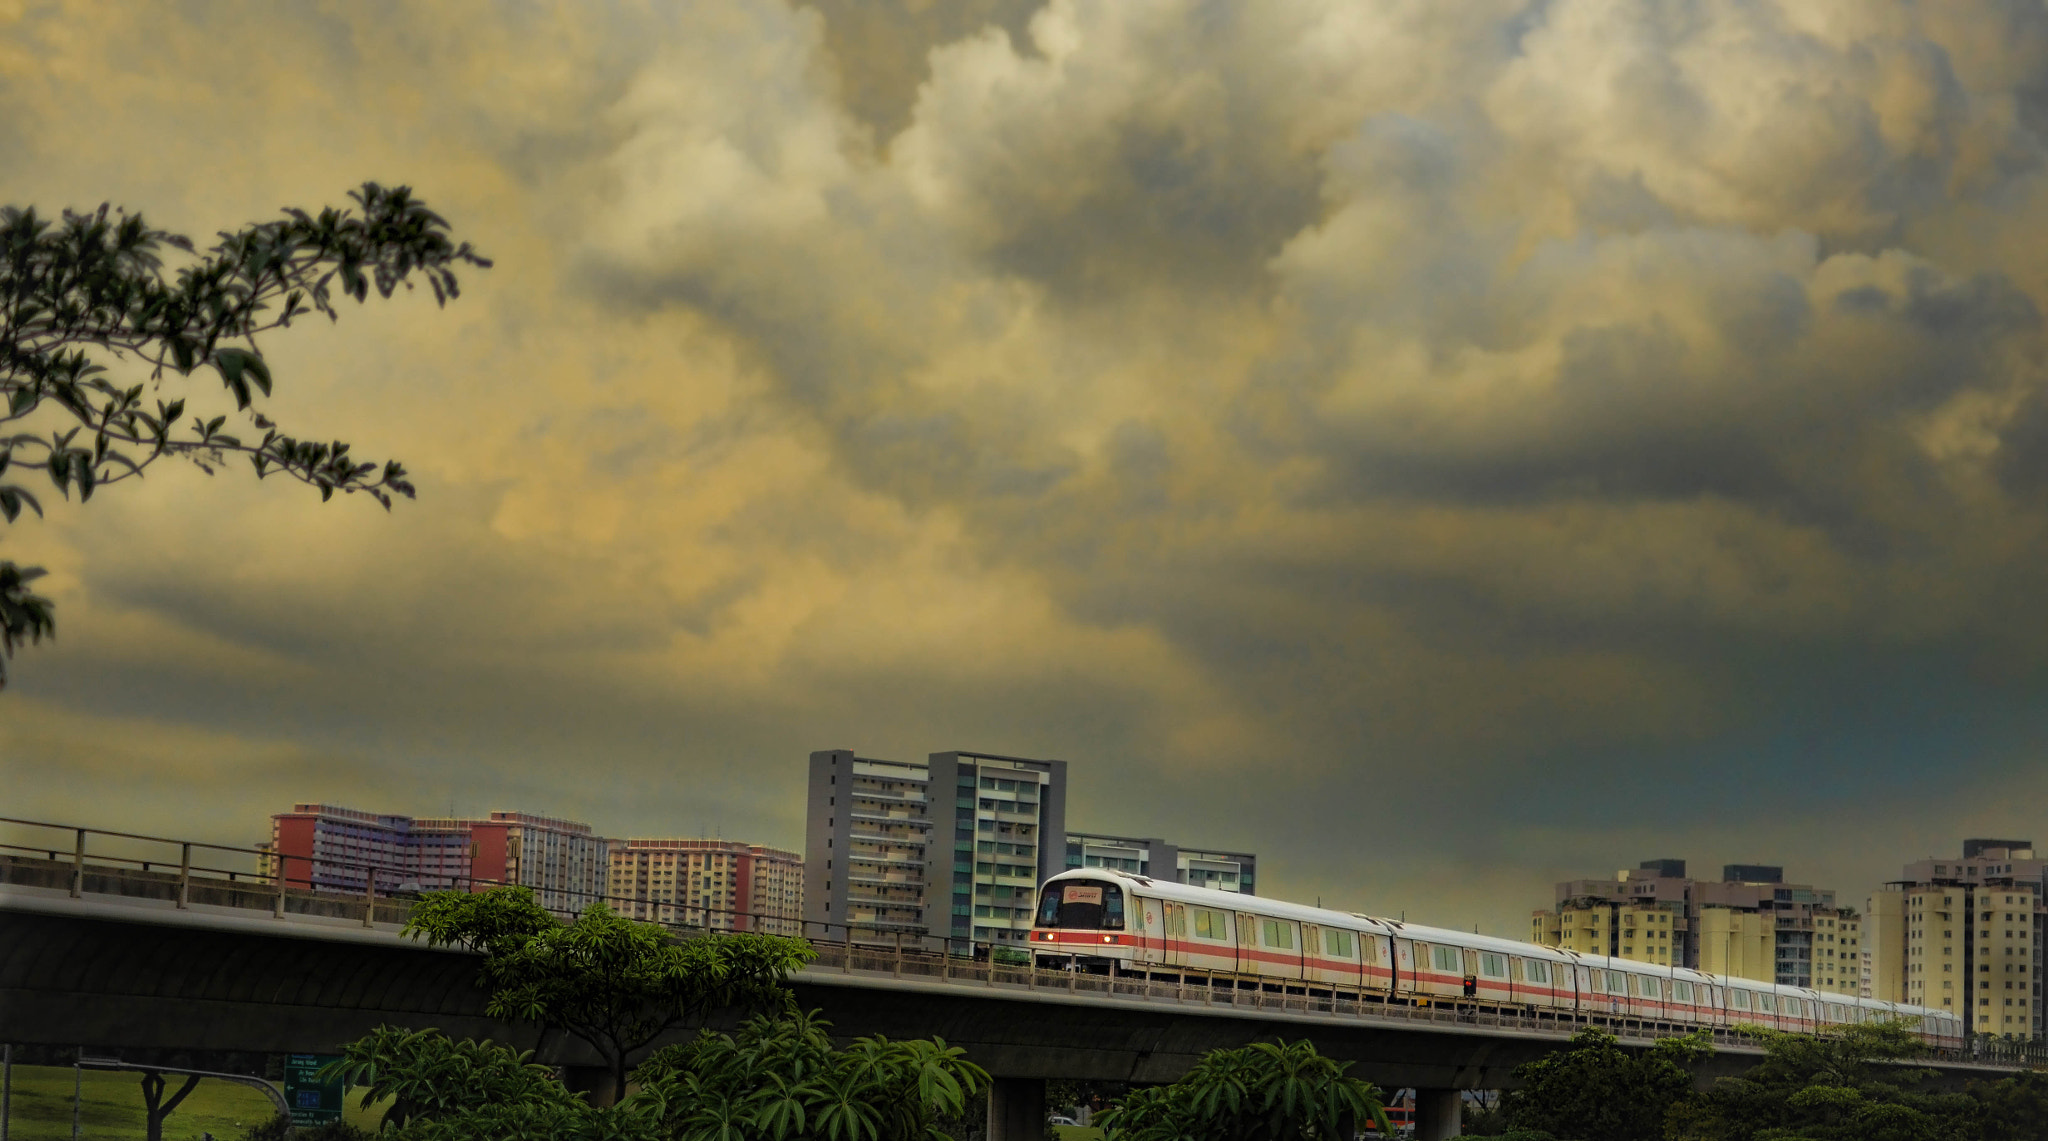 Photograph Chasing Clouds by Myint Mo Oo on 500px